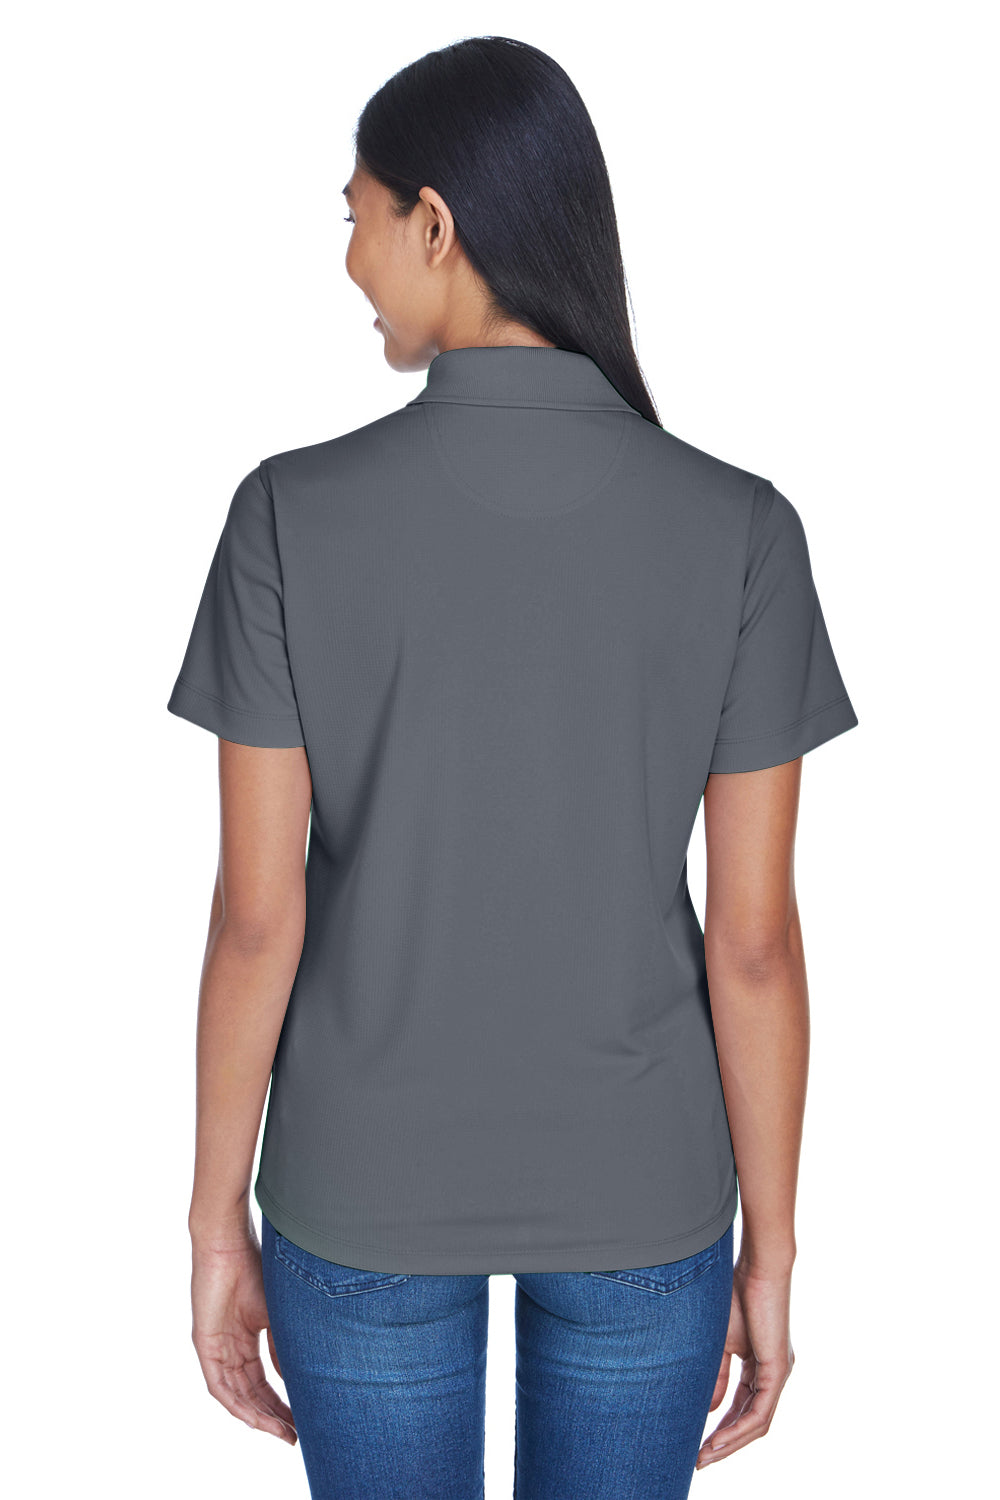 UltraClub 8445L Womens Cool & Dry Performance Moisture Wicking Short Sleeve Polo Shirt Charcoal Grey Back